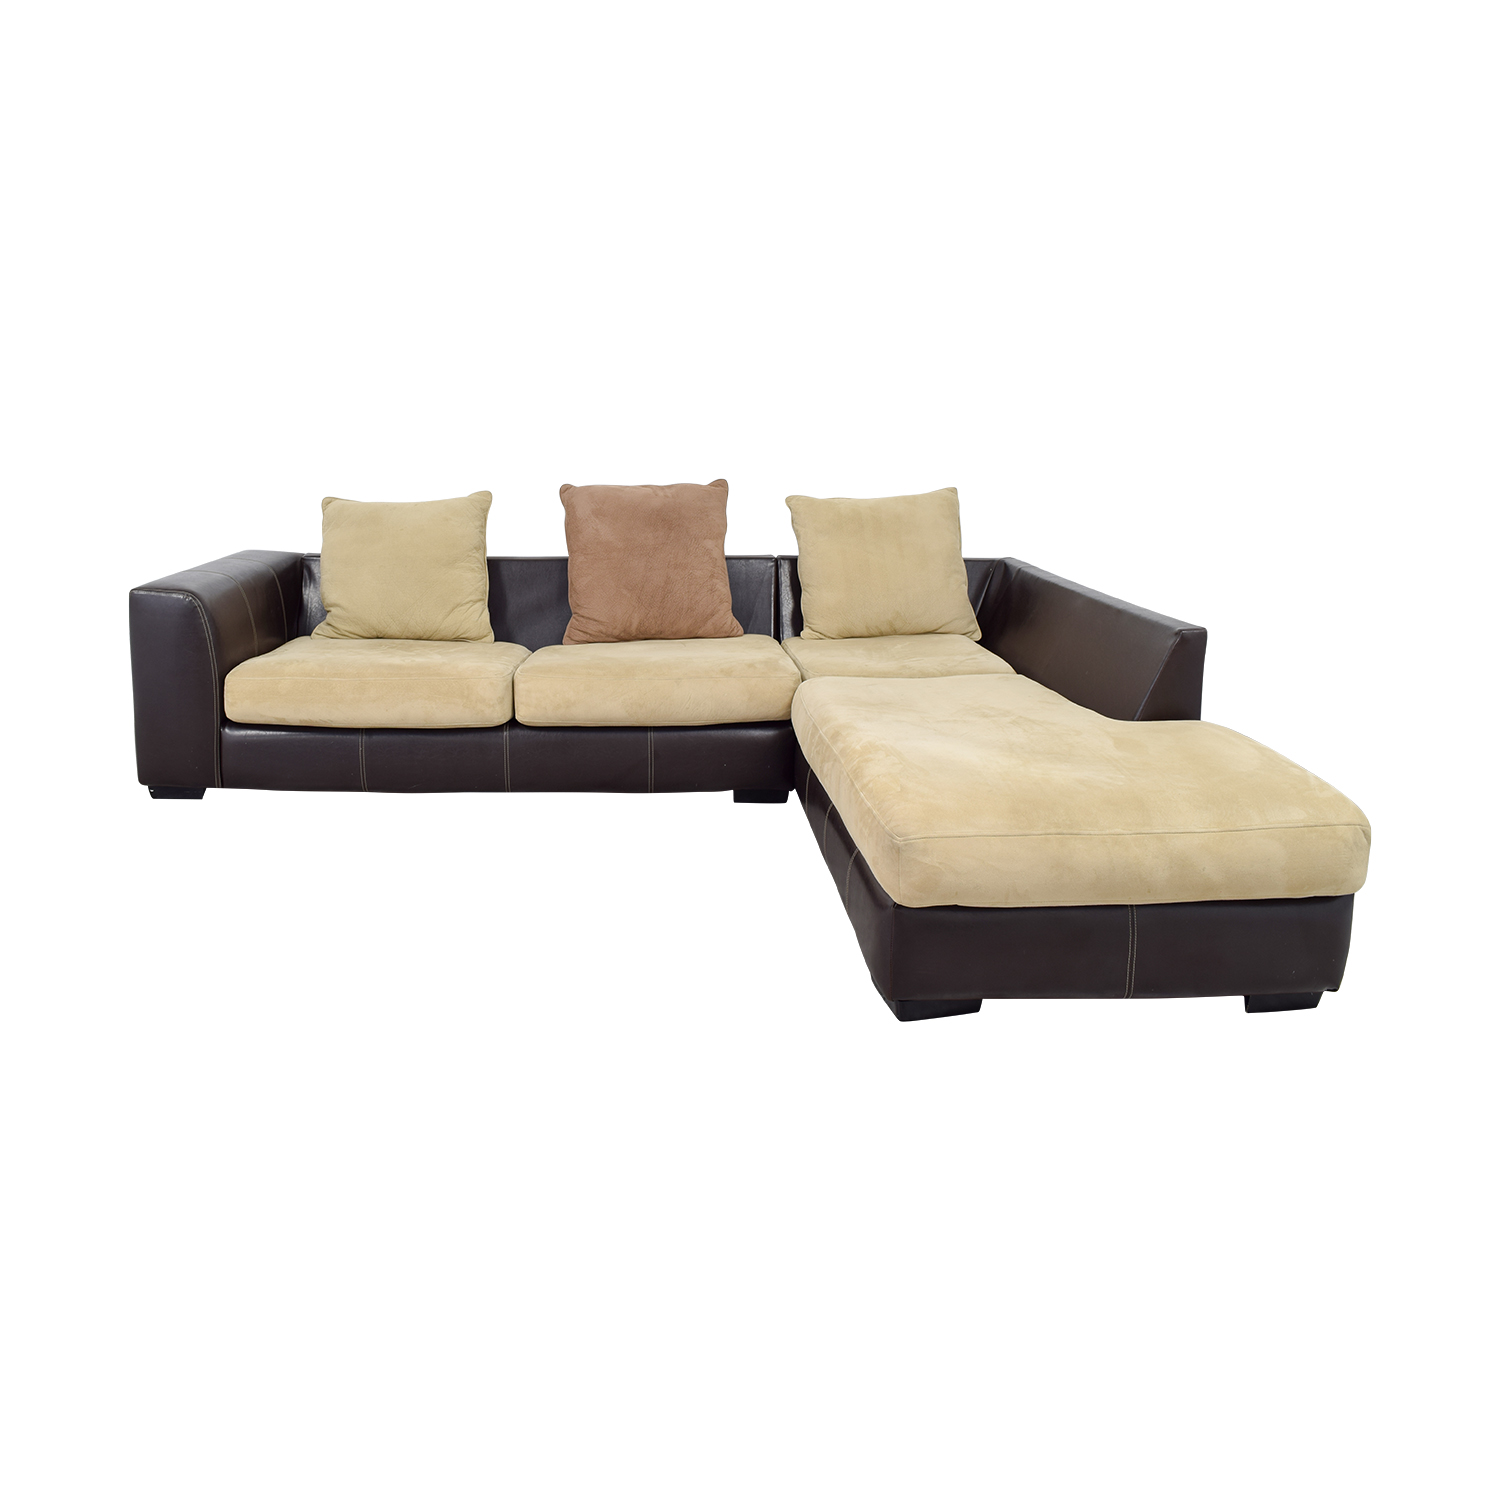 74 Off L Shaped Brown Leather And Tan Fabric Sectional